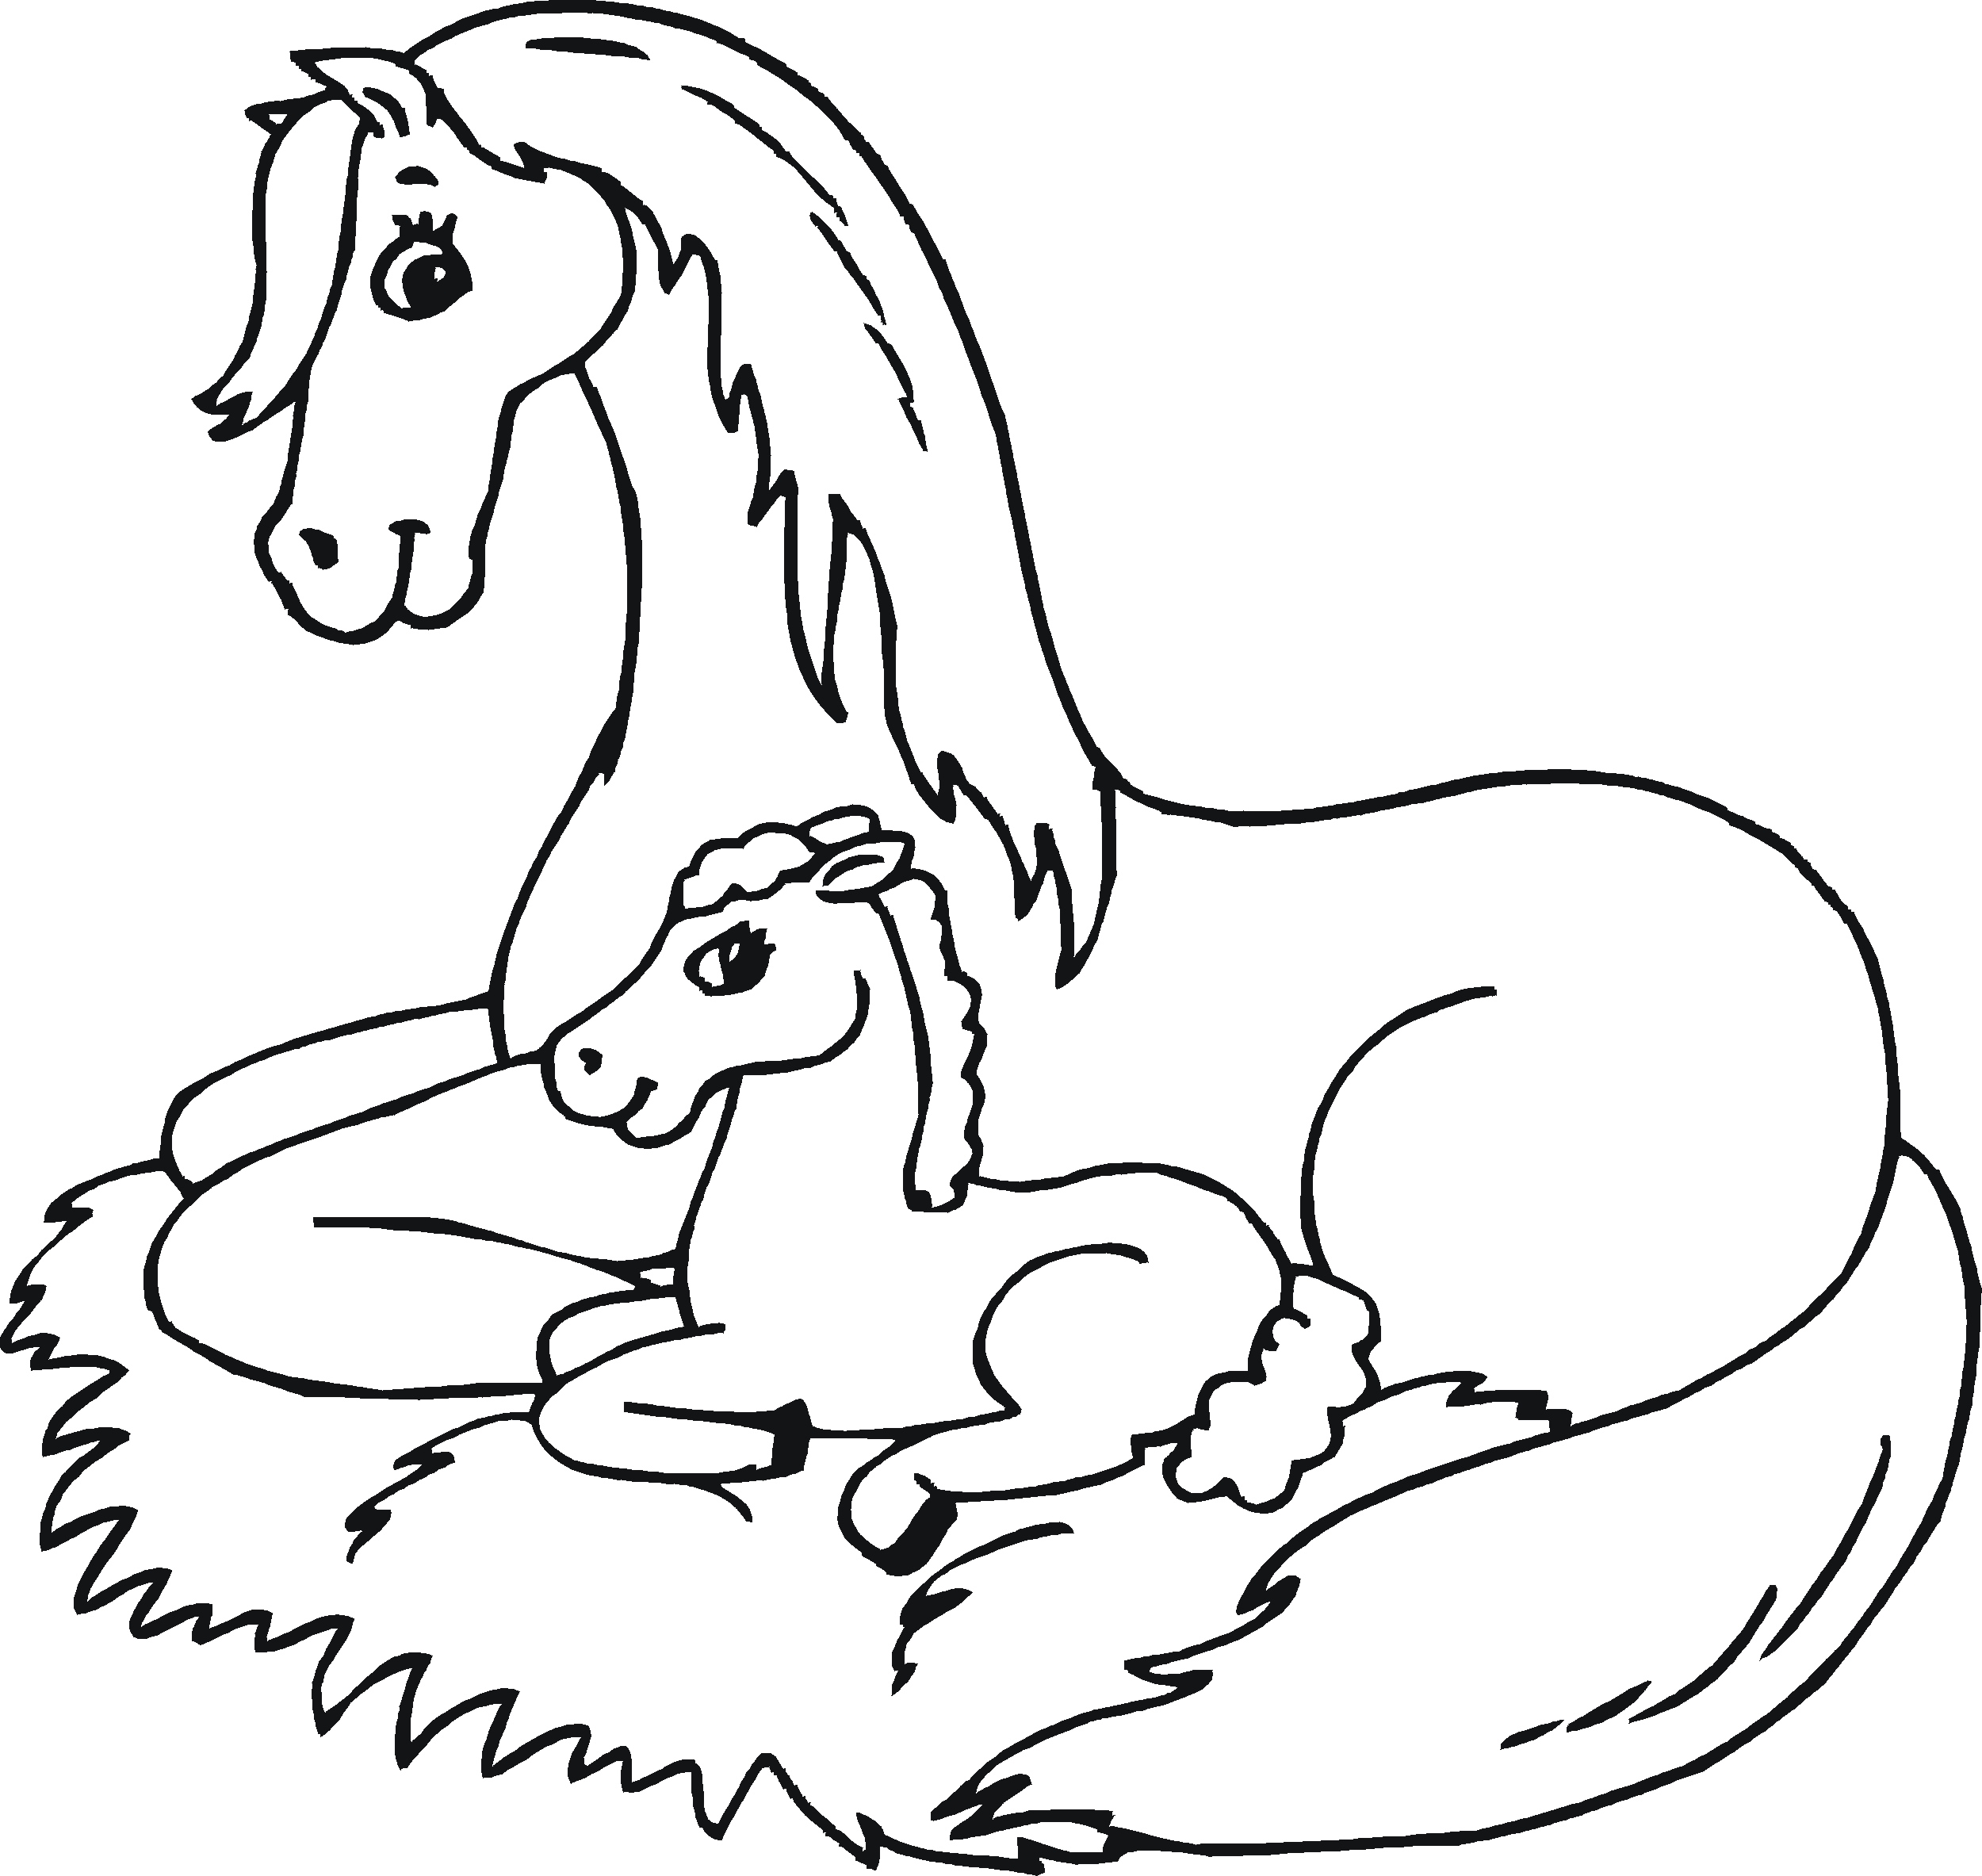 horse coloring pages online surprising inspiration horse coloring page free coloring coloring horse online pages